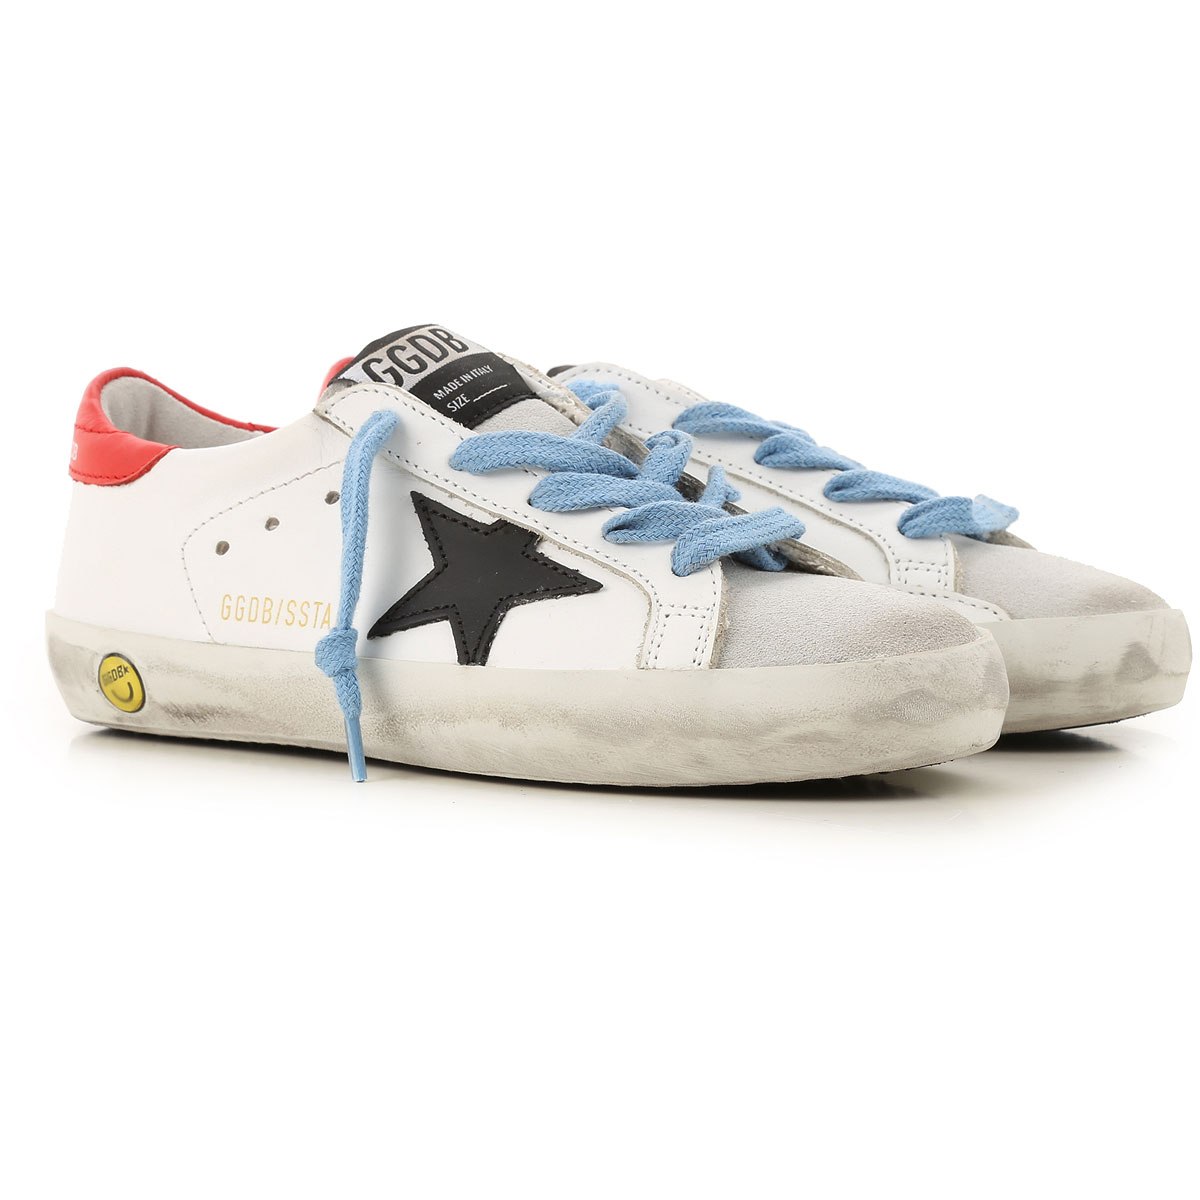 Golden Goose Kids Shoes for Boys On Sale, White, Leather, 2019, 24 26 27 28 29 30 31 32 33